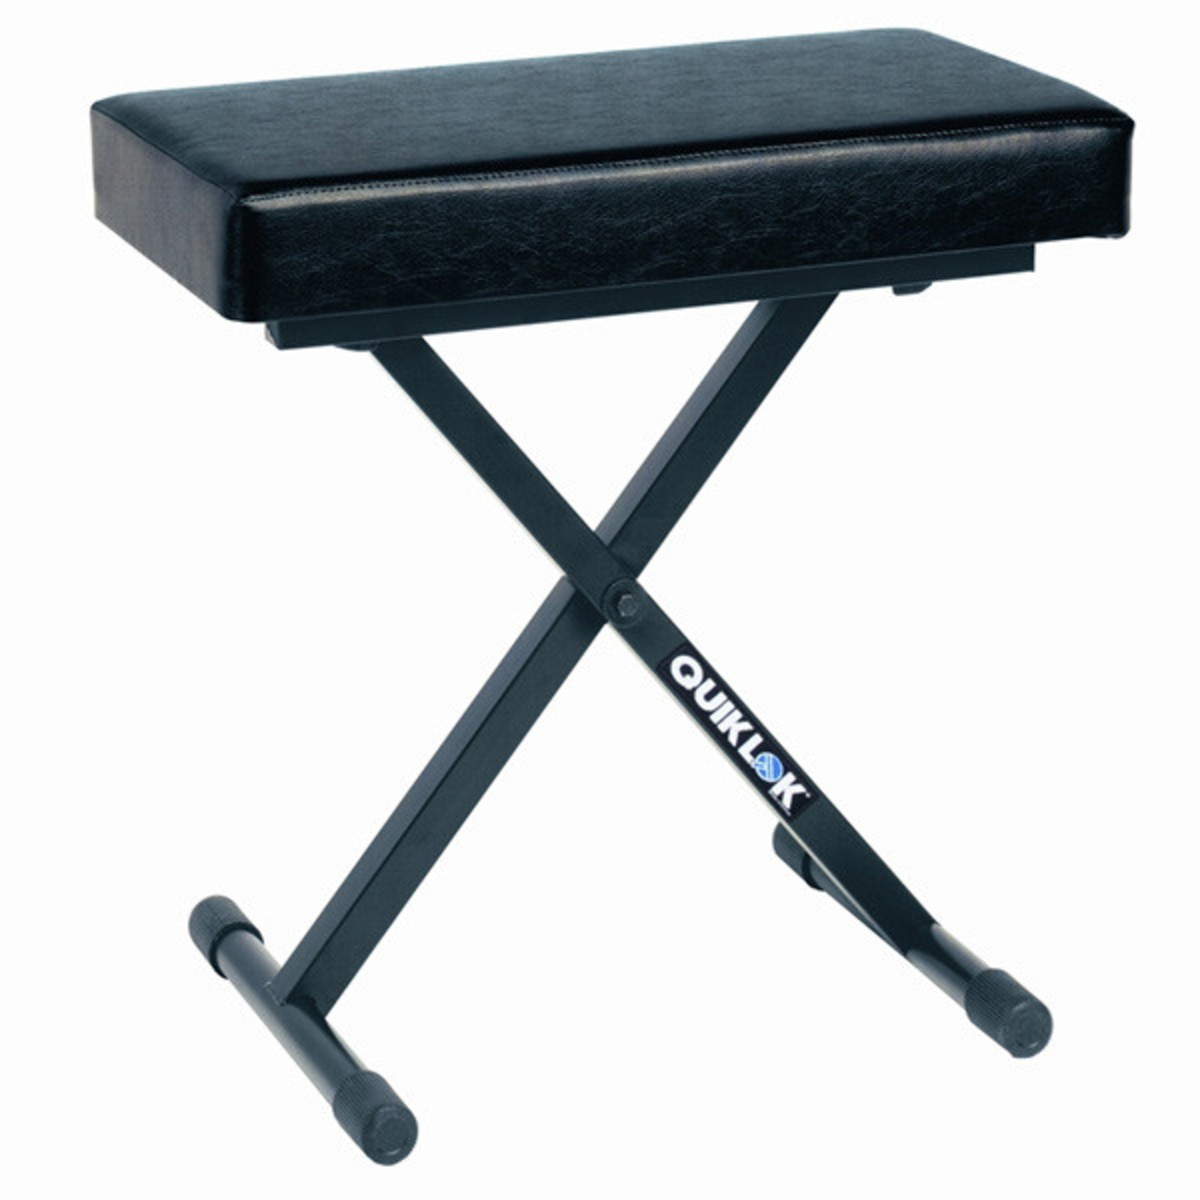 Quiklok Bx718 Deluxe Adjustable Piano Bench Ex Demo At